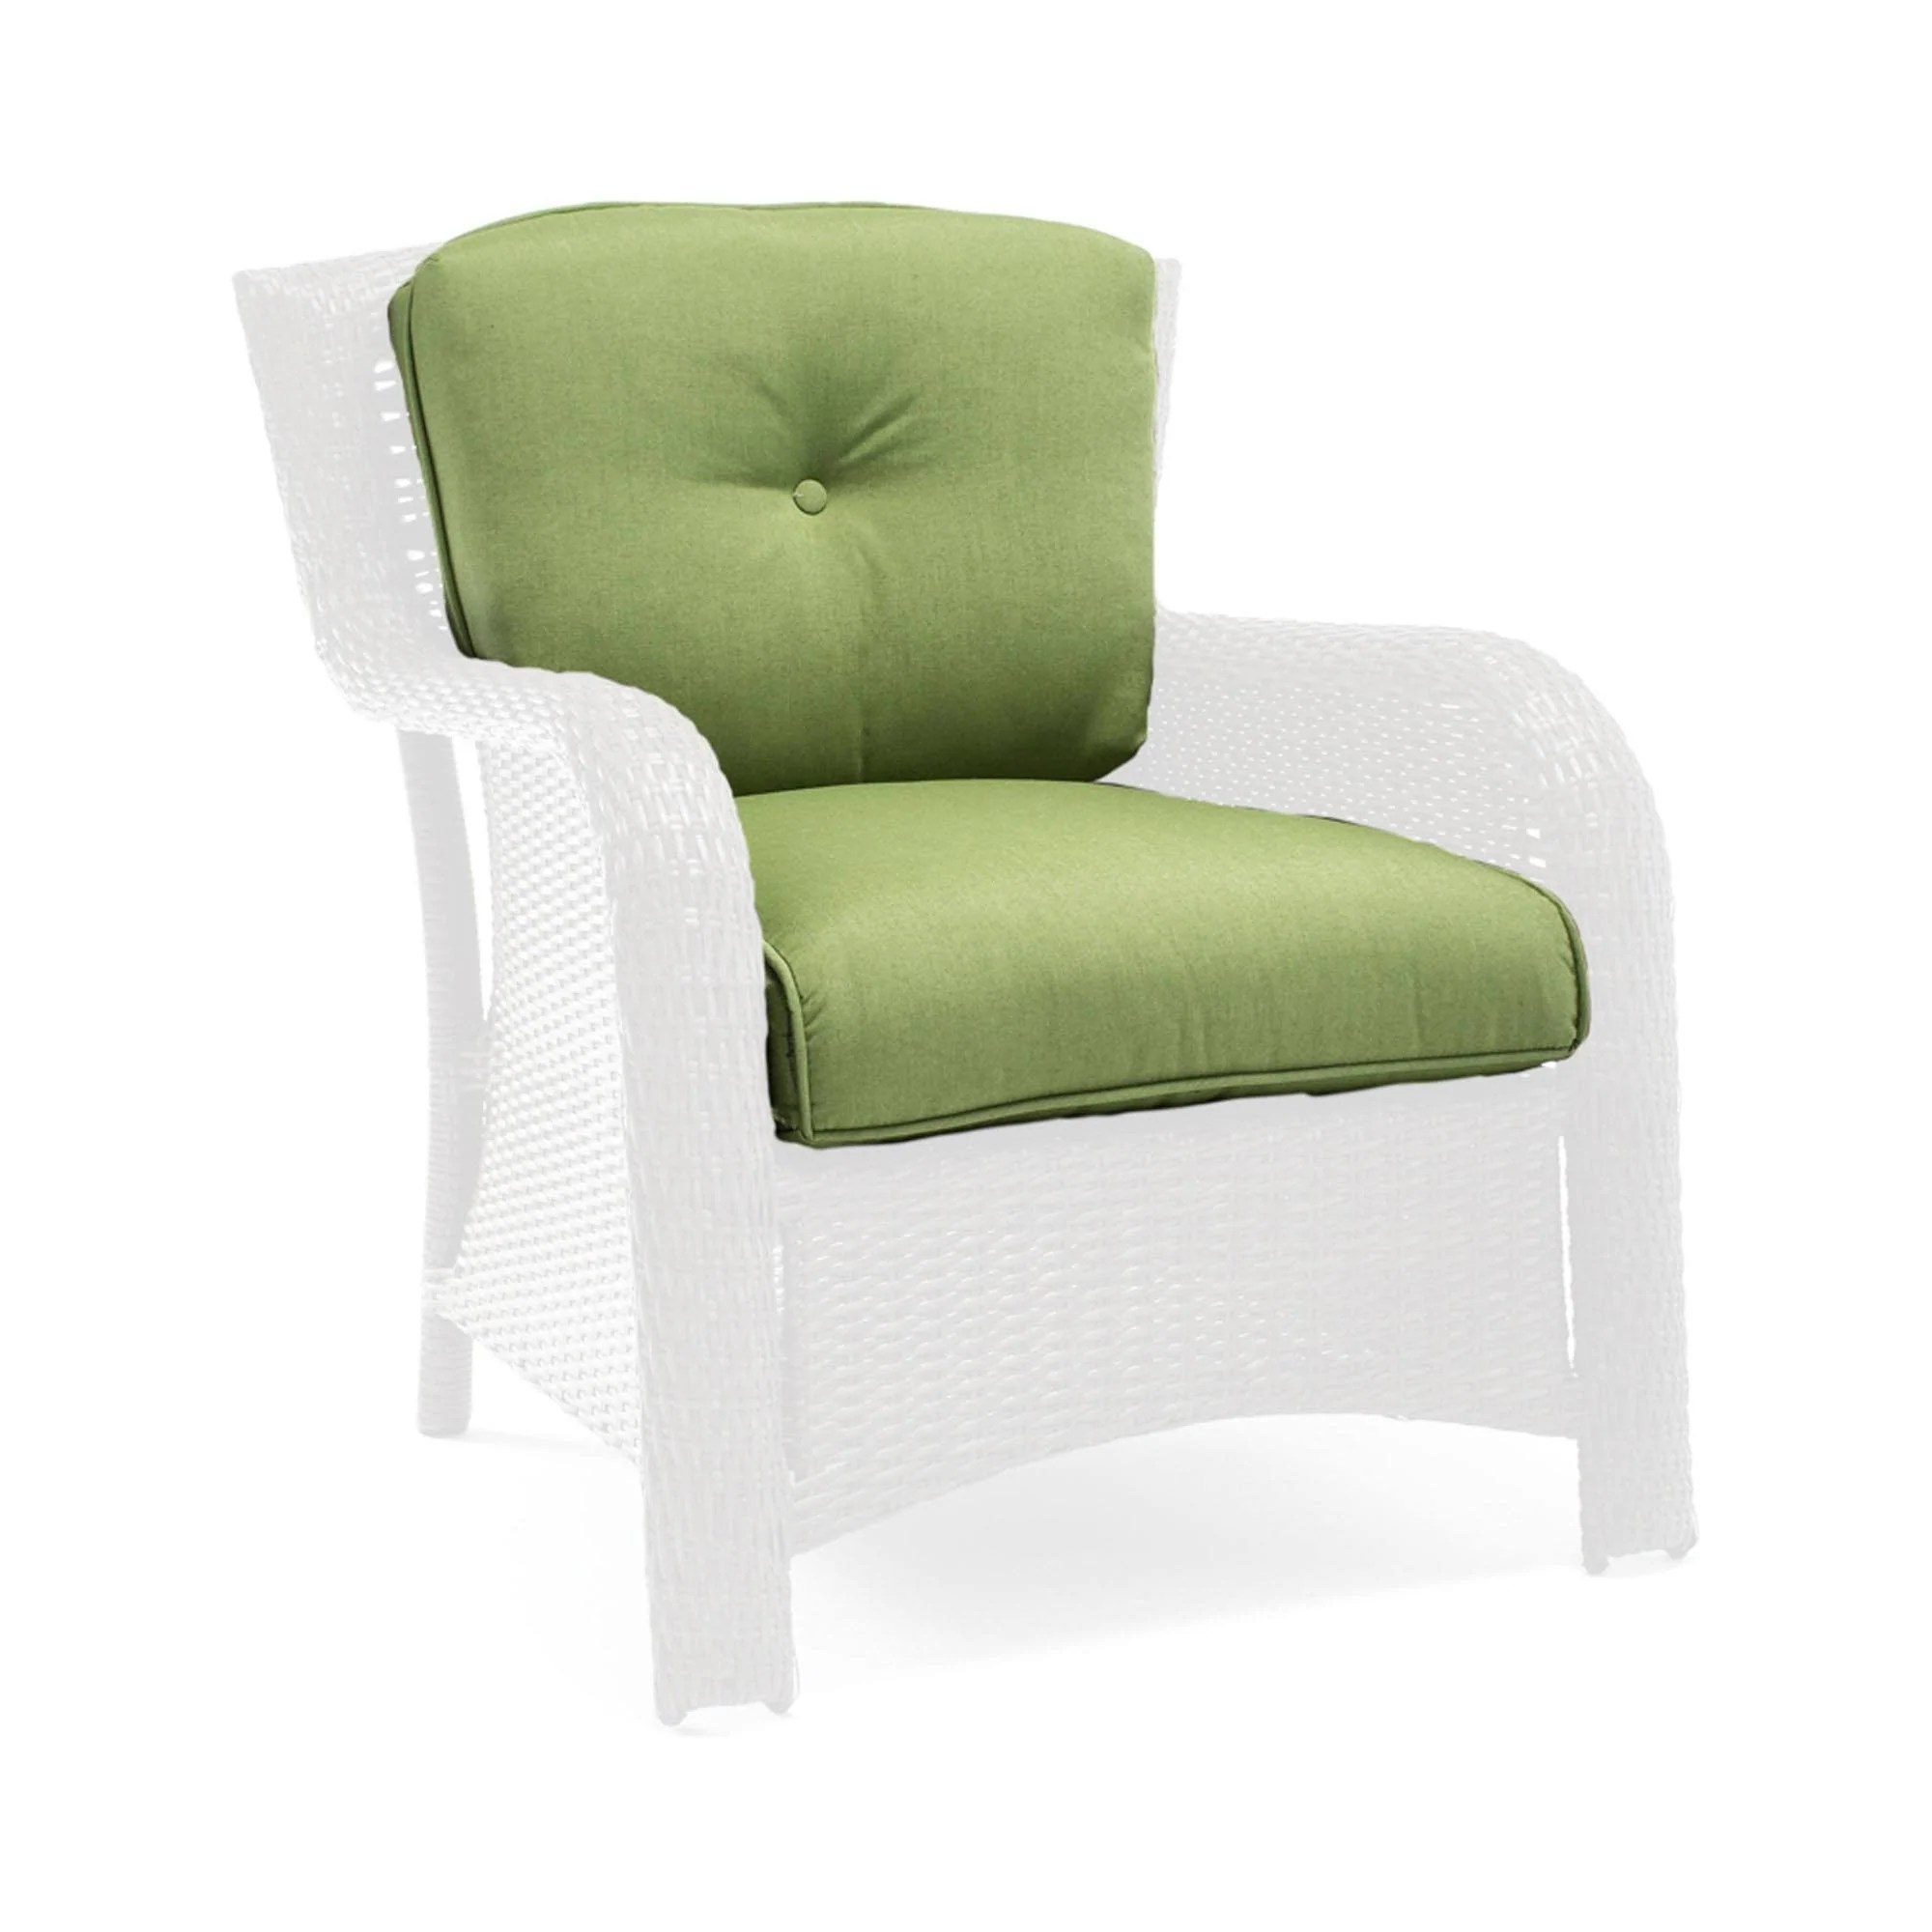 sawyer patio lounge chair replacement cushion